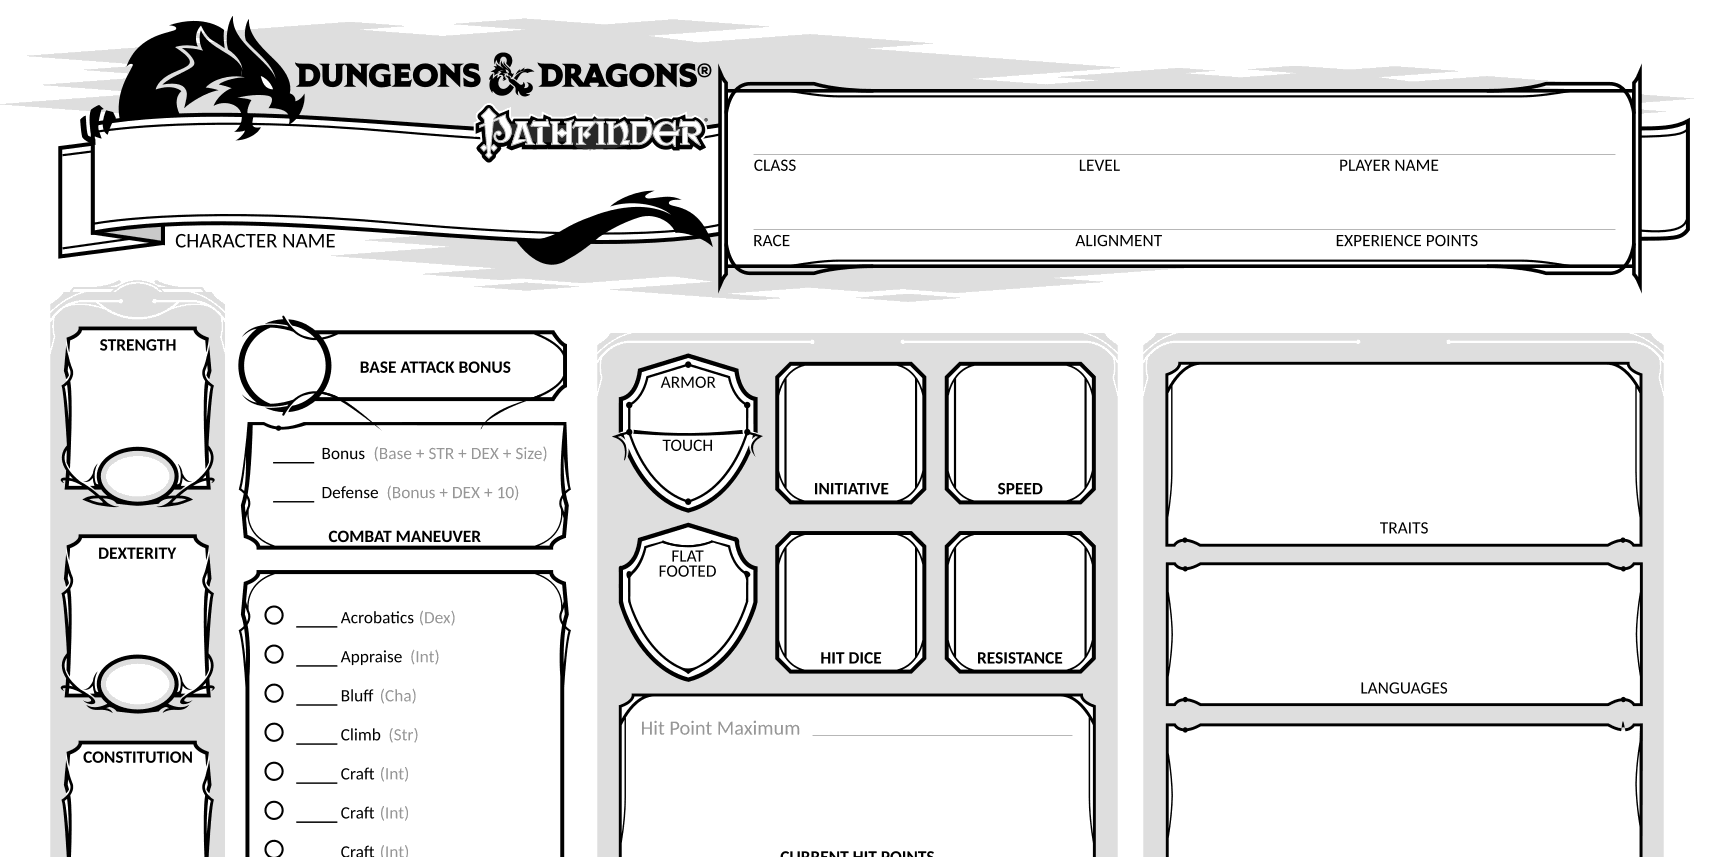 Pathfinder 5e Character Sheet | Mixed Signals